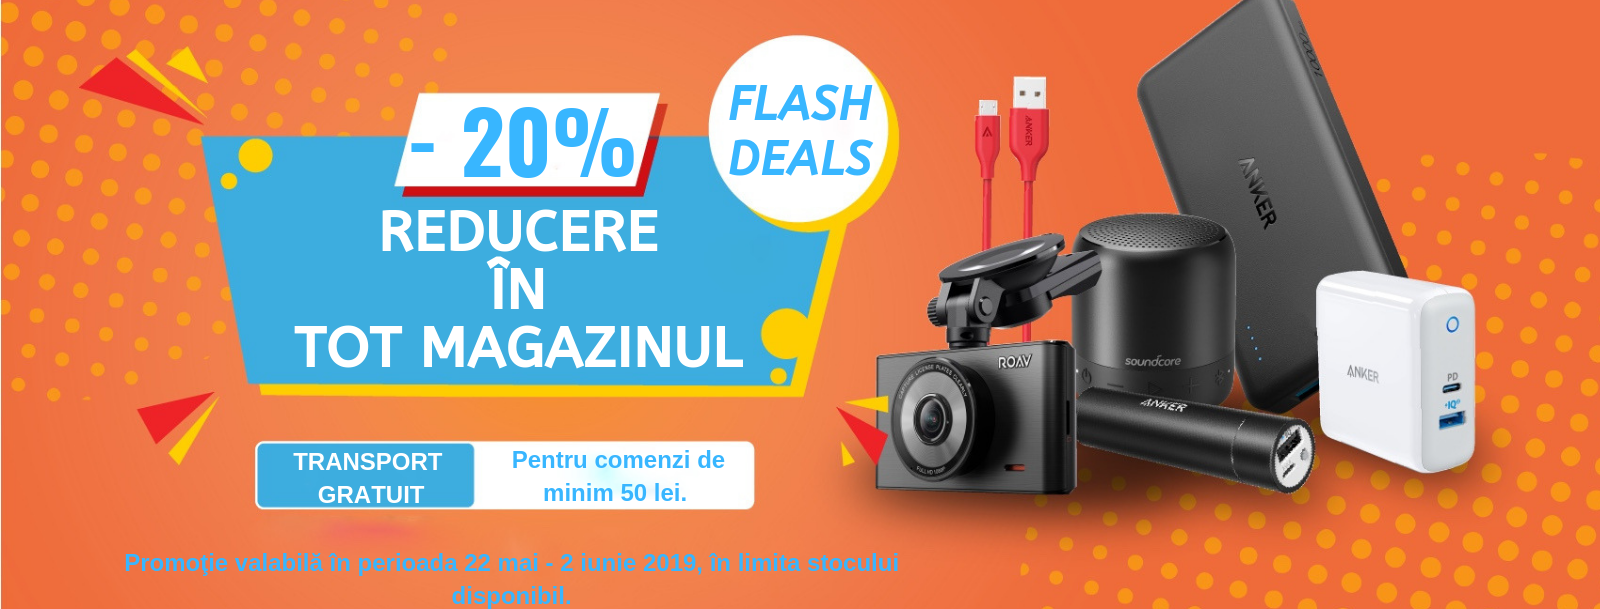 reducere 20% in tot magazinul